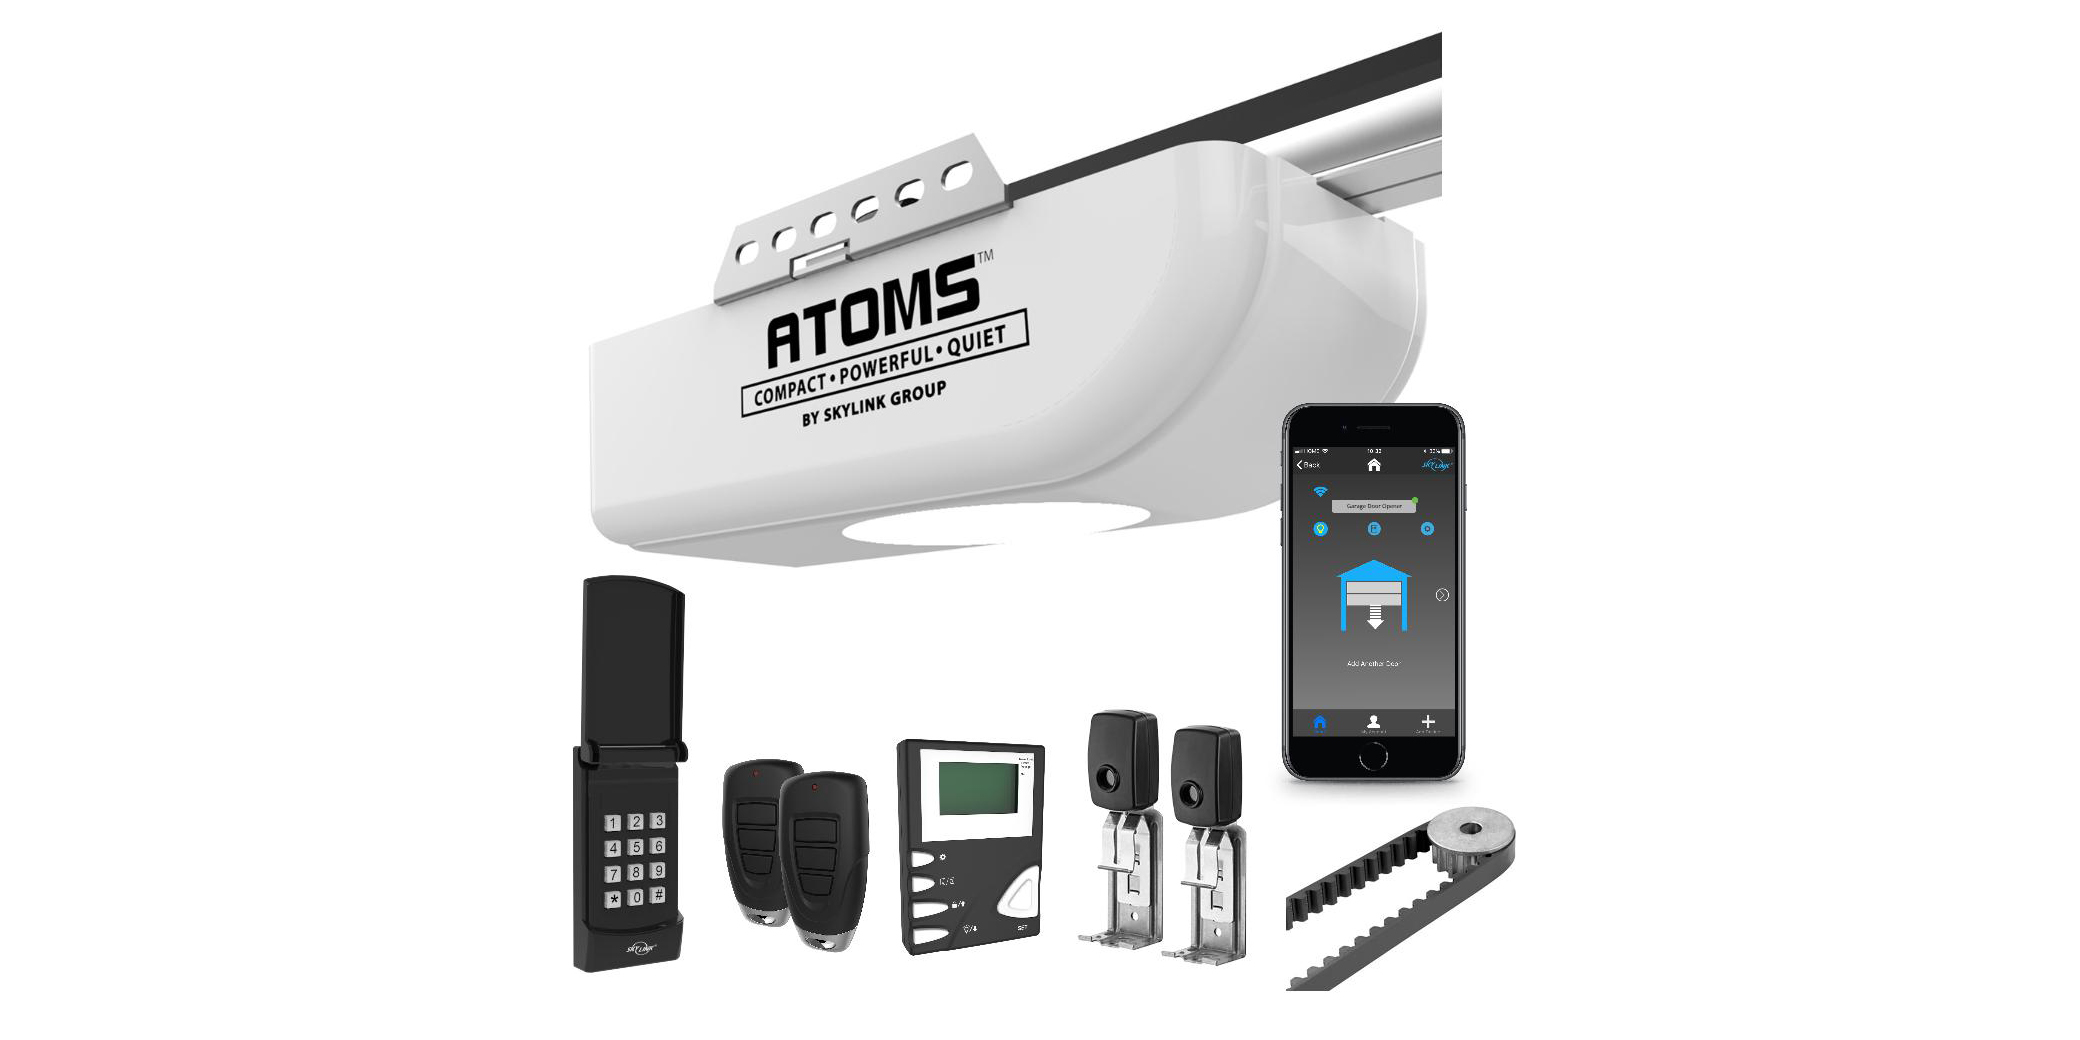 Today Only Home Depot Takes Up To 25 Off Garage Door Openers More 9to5toys